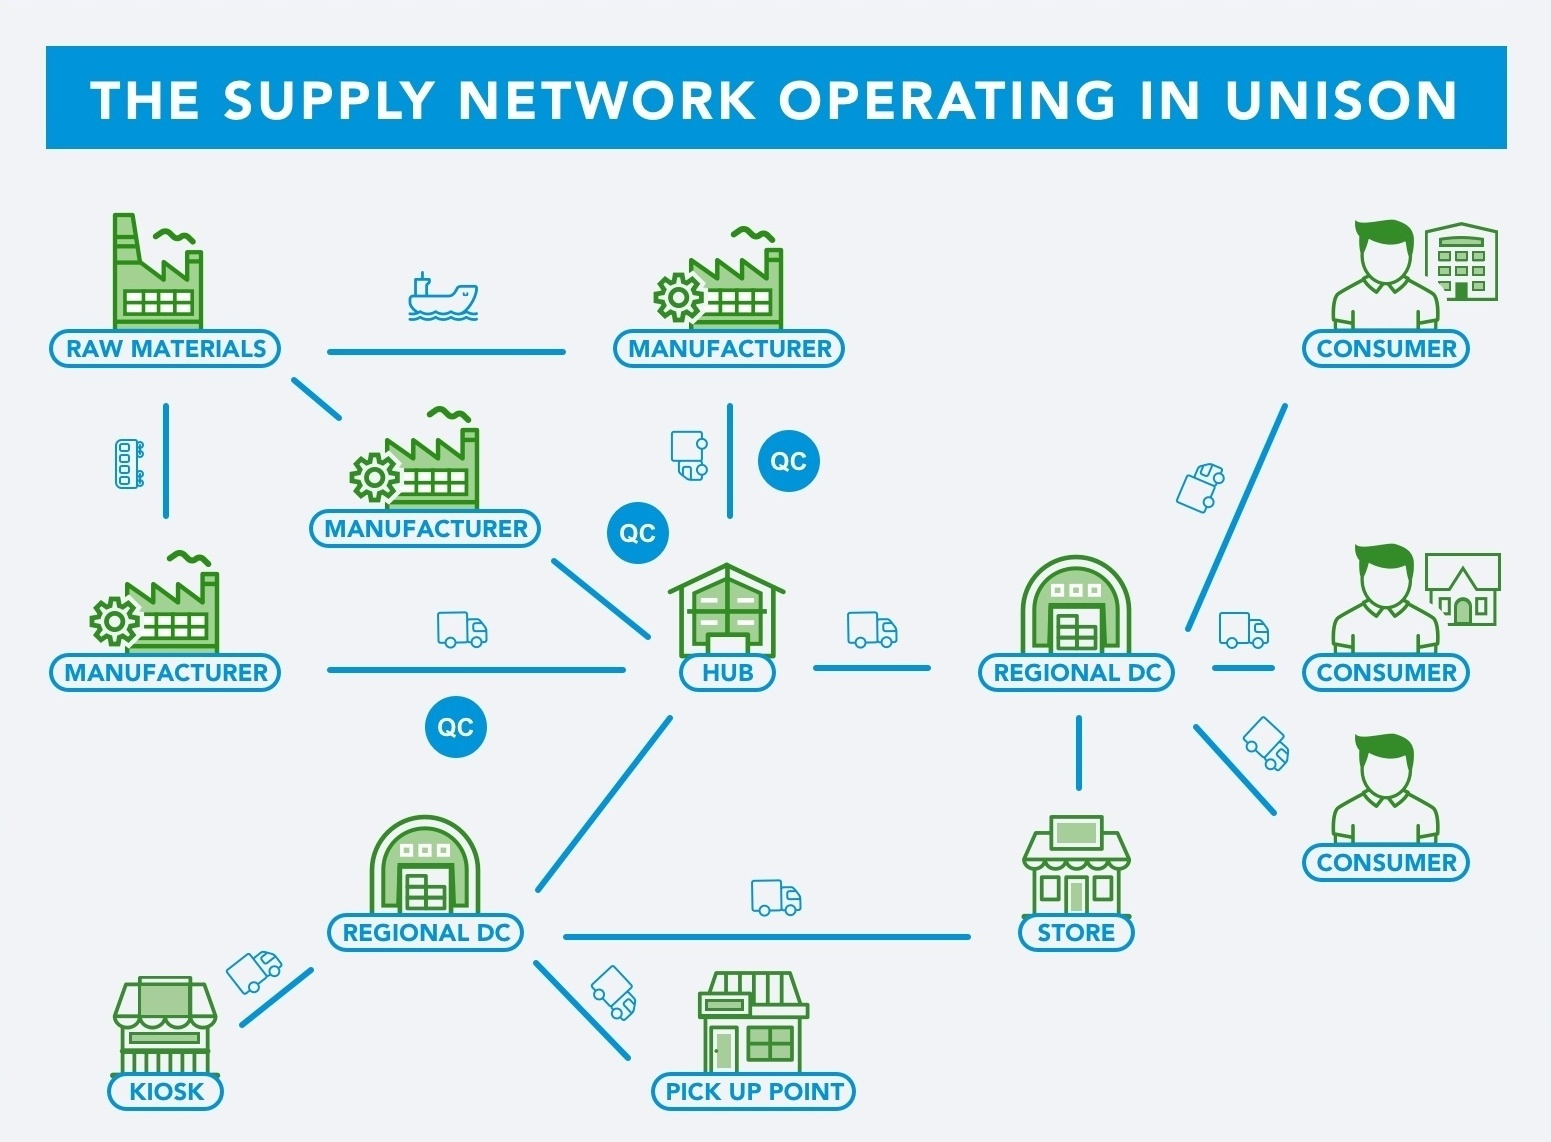 Supply Network Synchronized & Operating in Unison